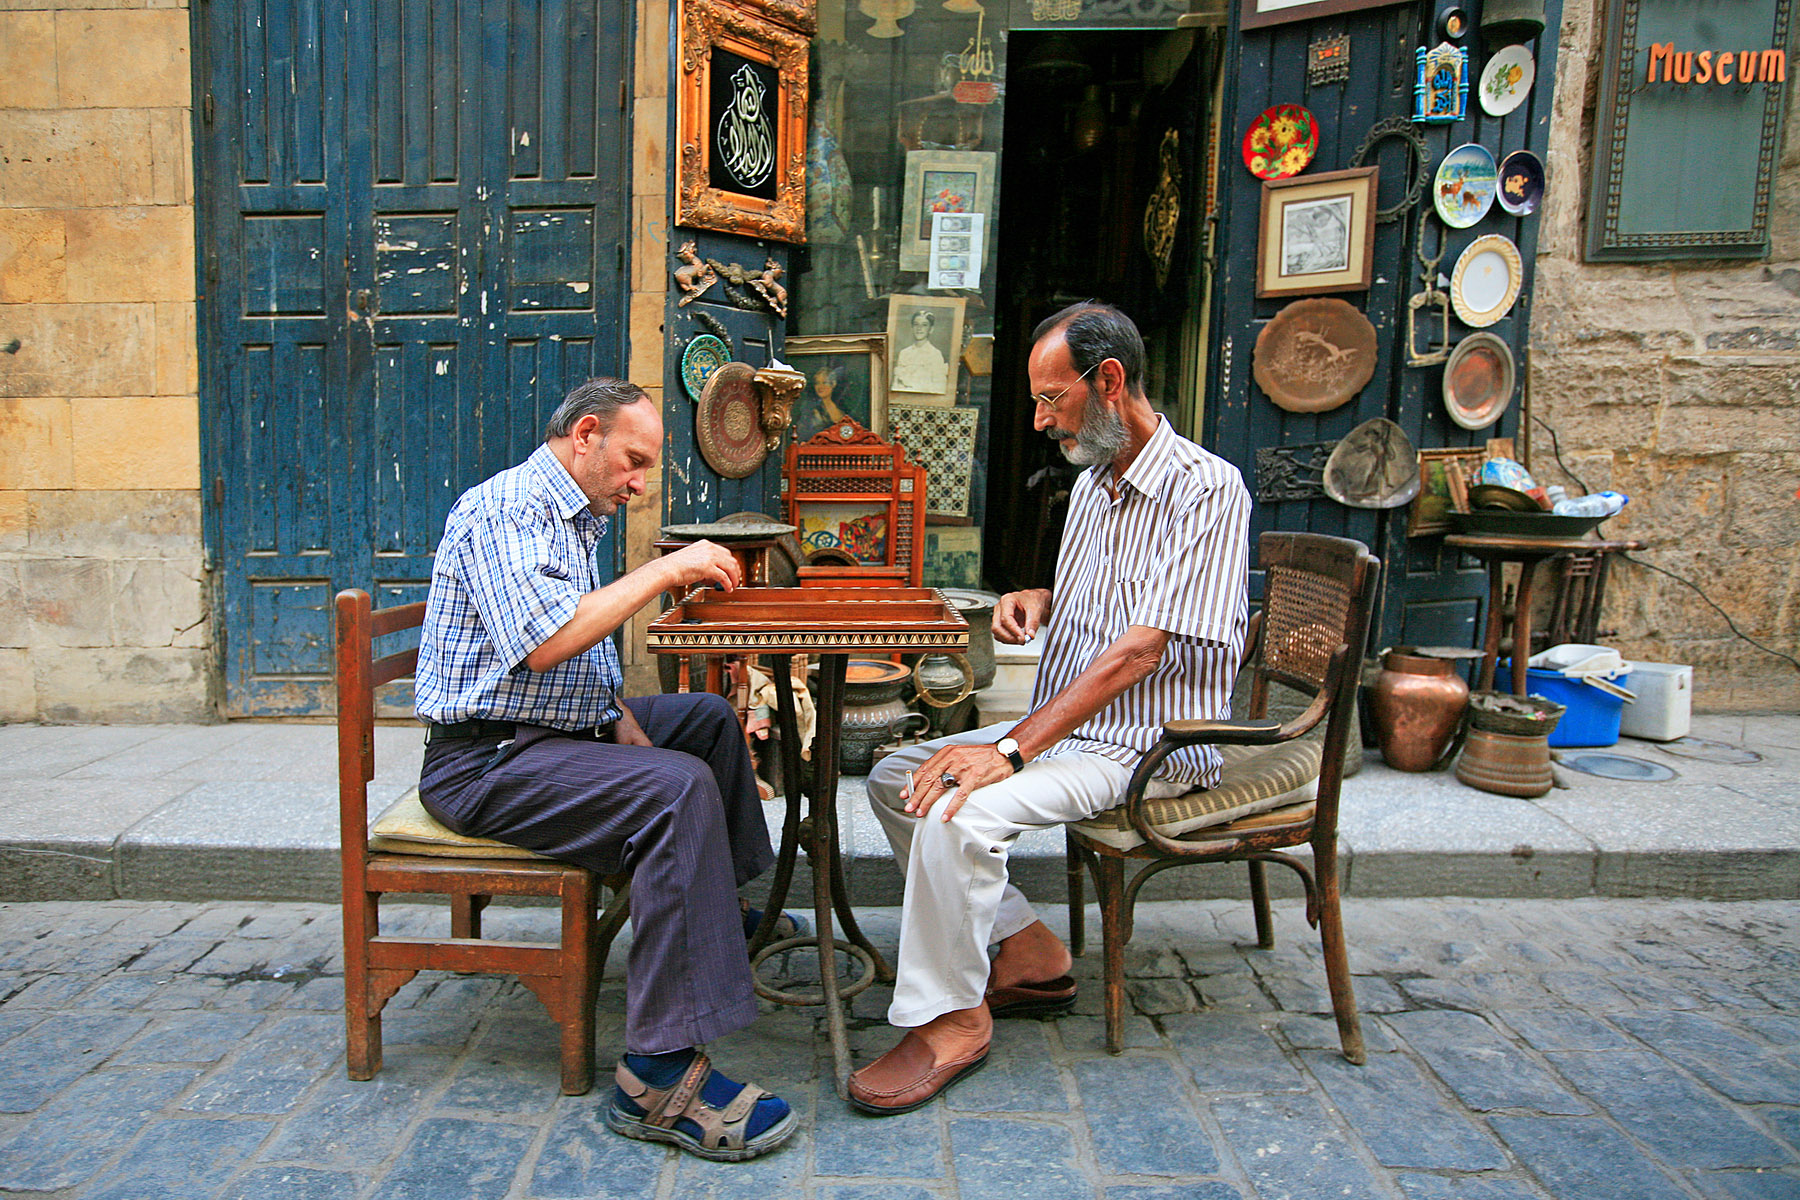 A street in Cairo